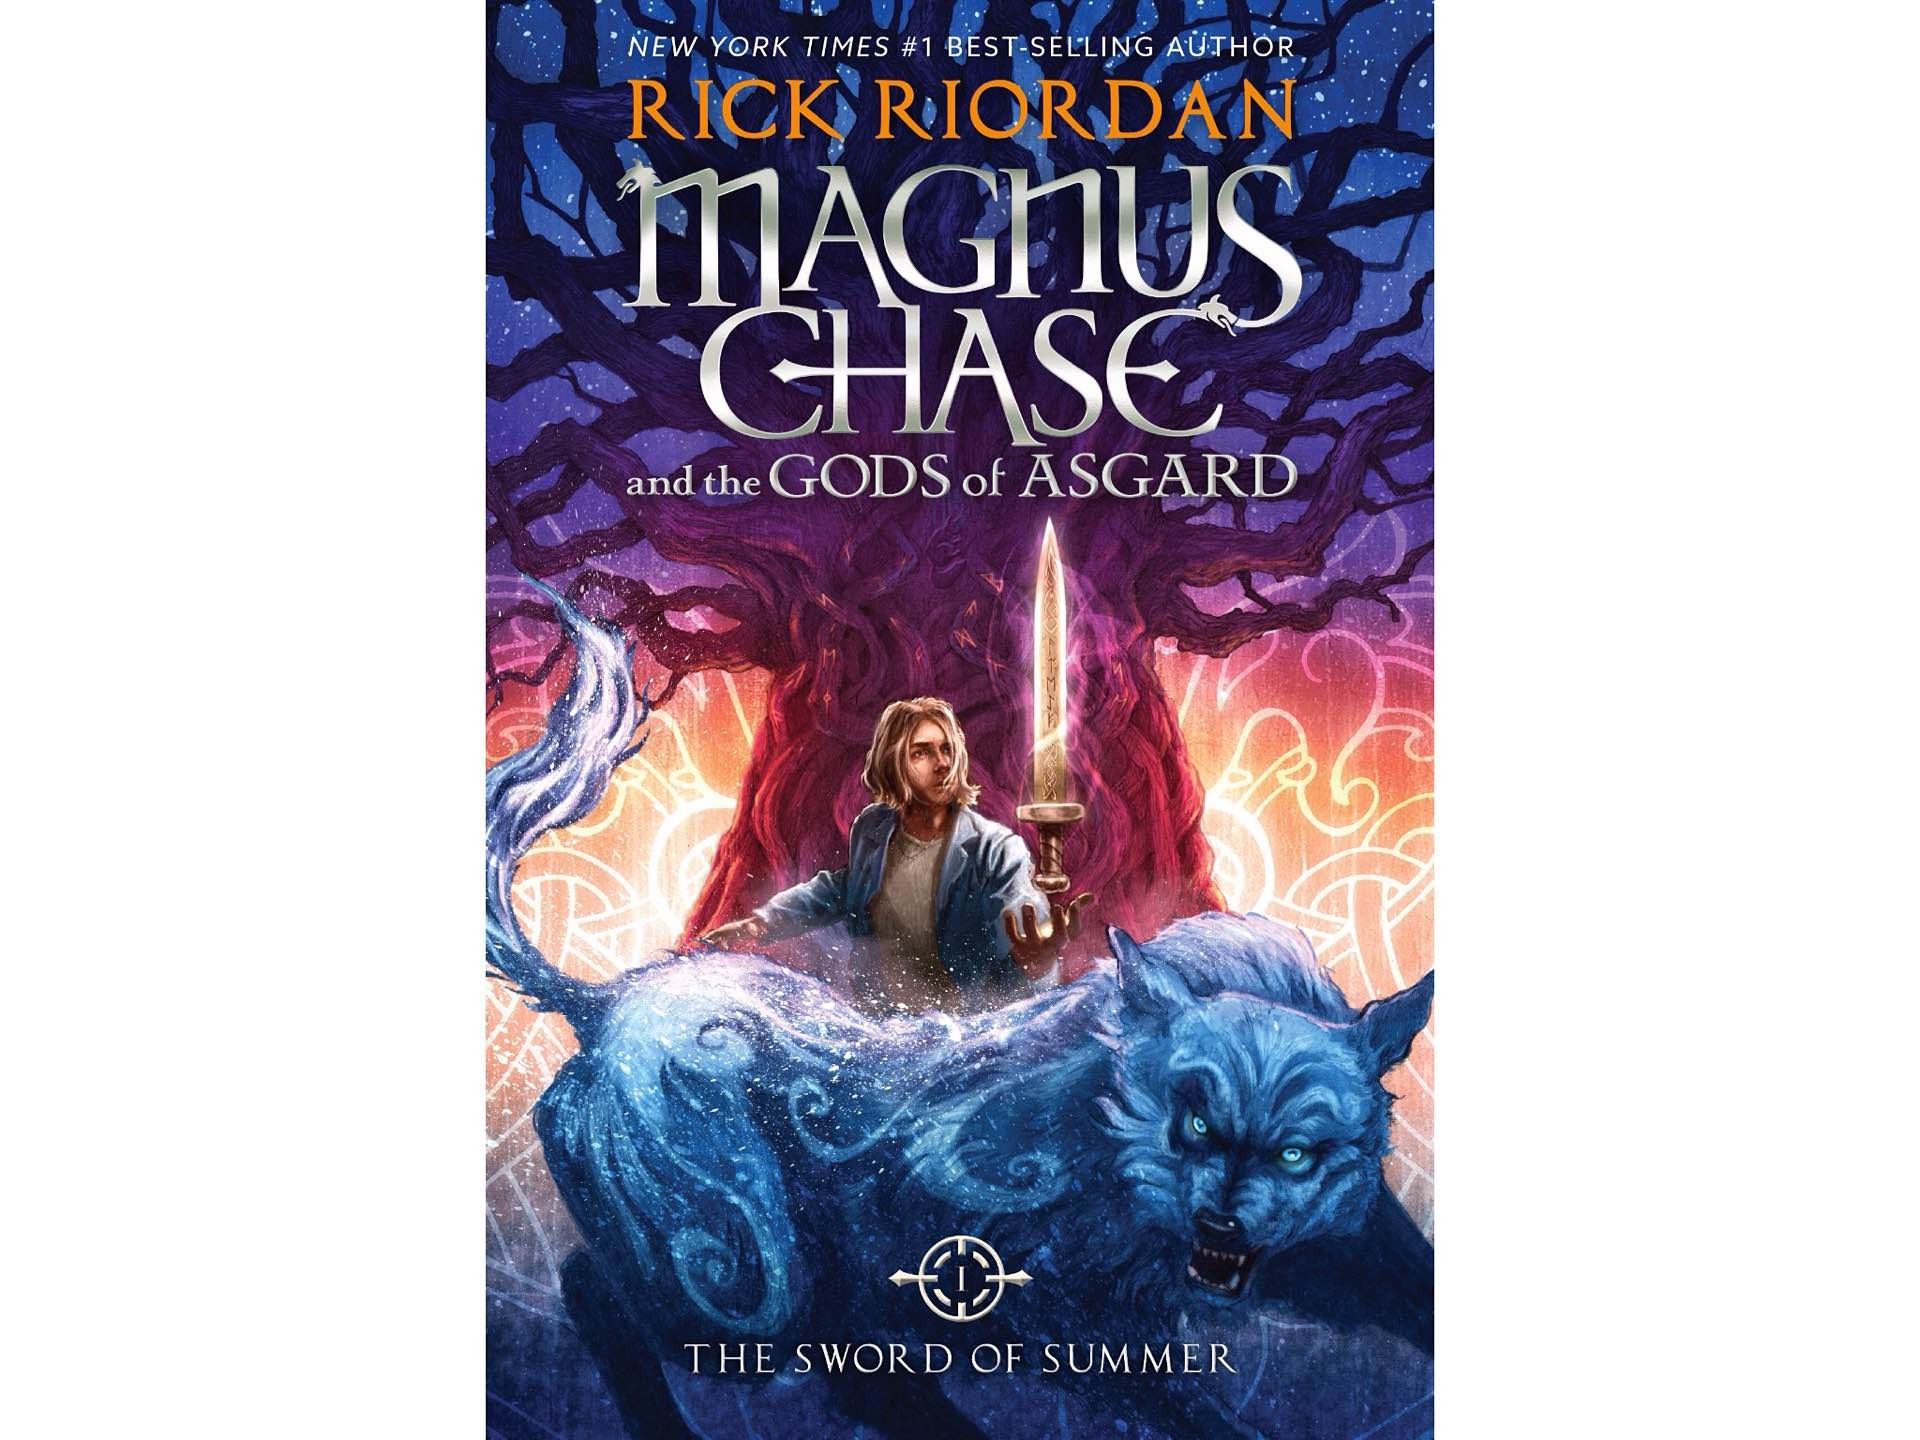 Magnus Chase and the Gods of Asgard, Book One: The Sword of Summer by Rick Riordan.